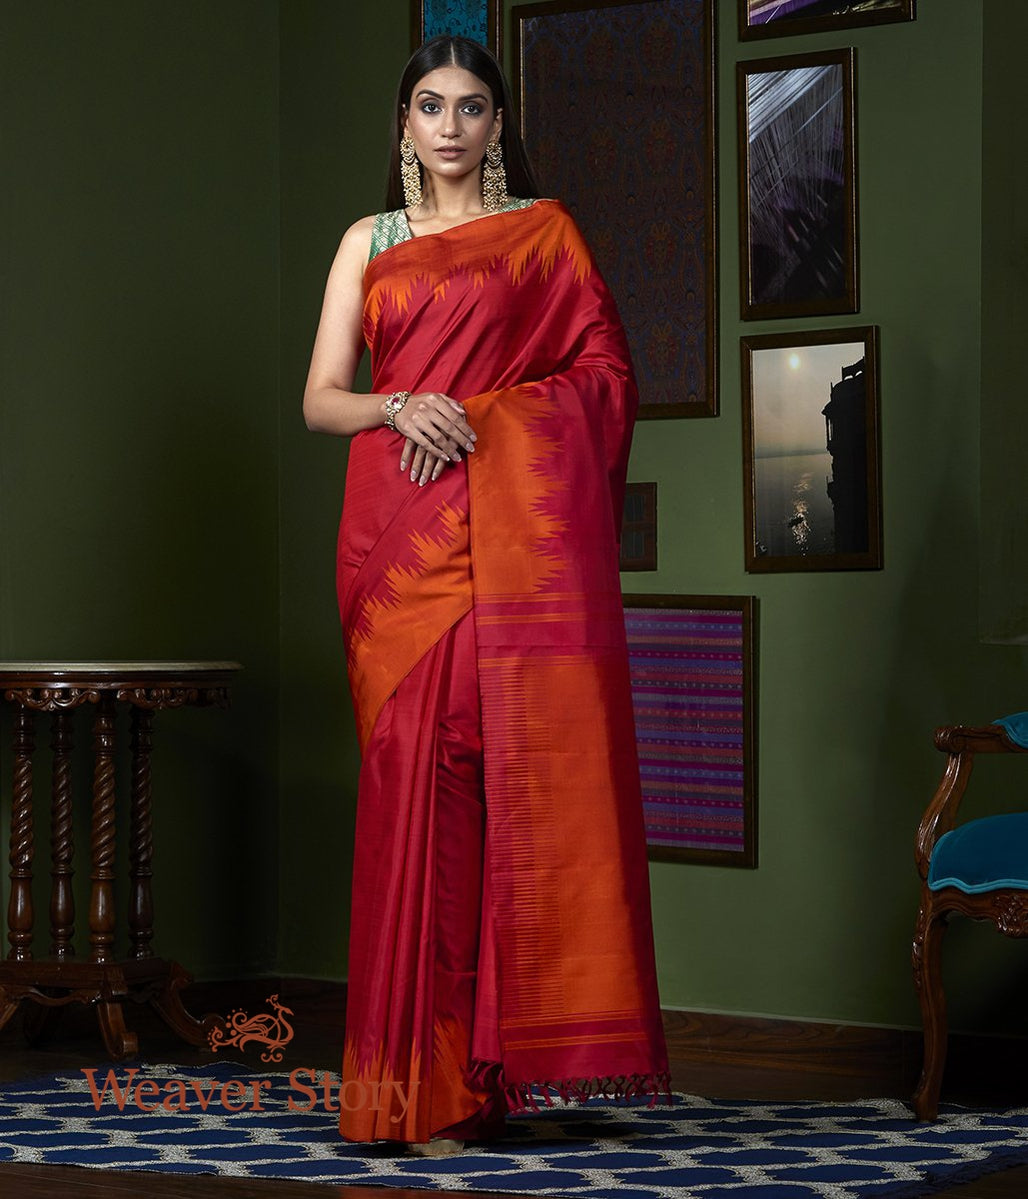 Handwoven Red Kanjivaram Saree with Orange Twill Weave Temple Border